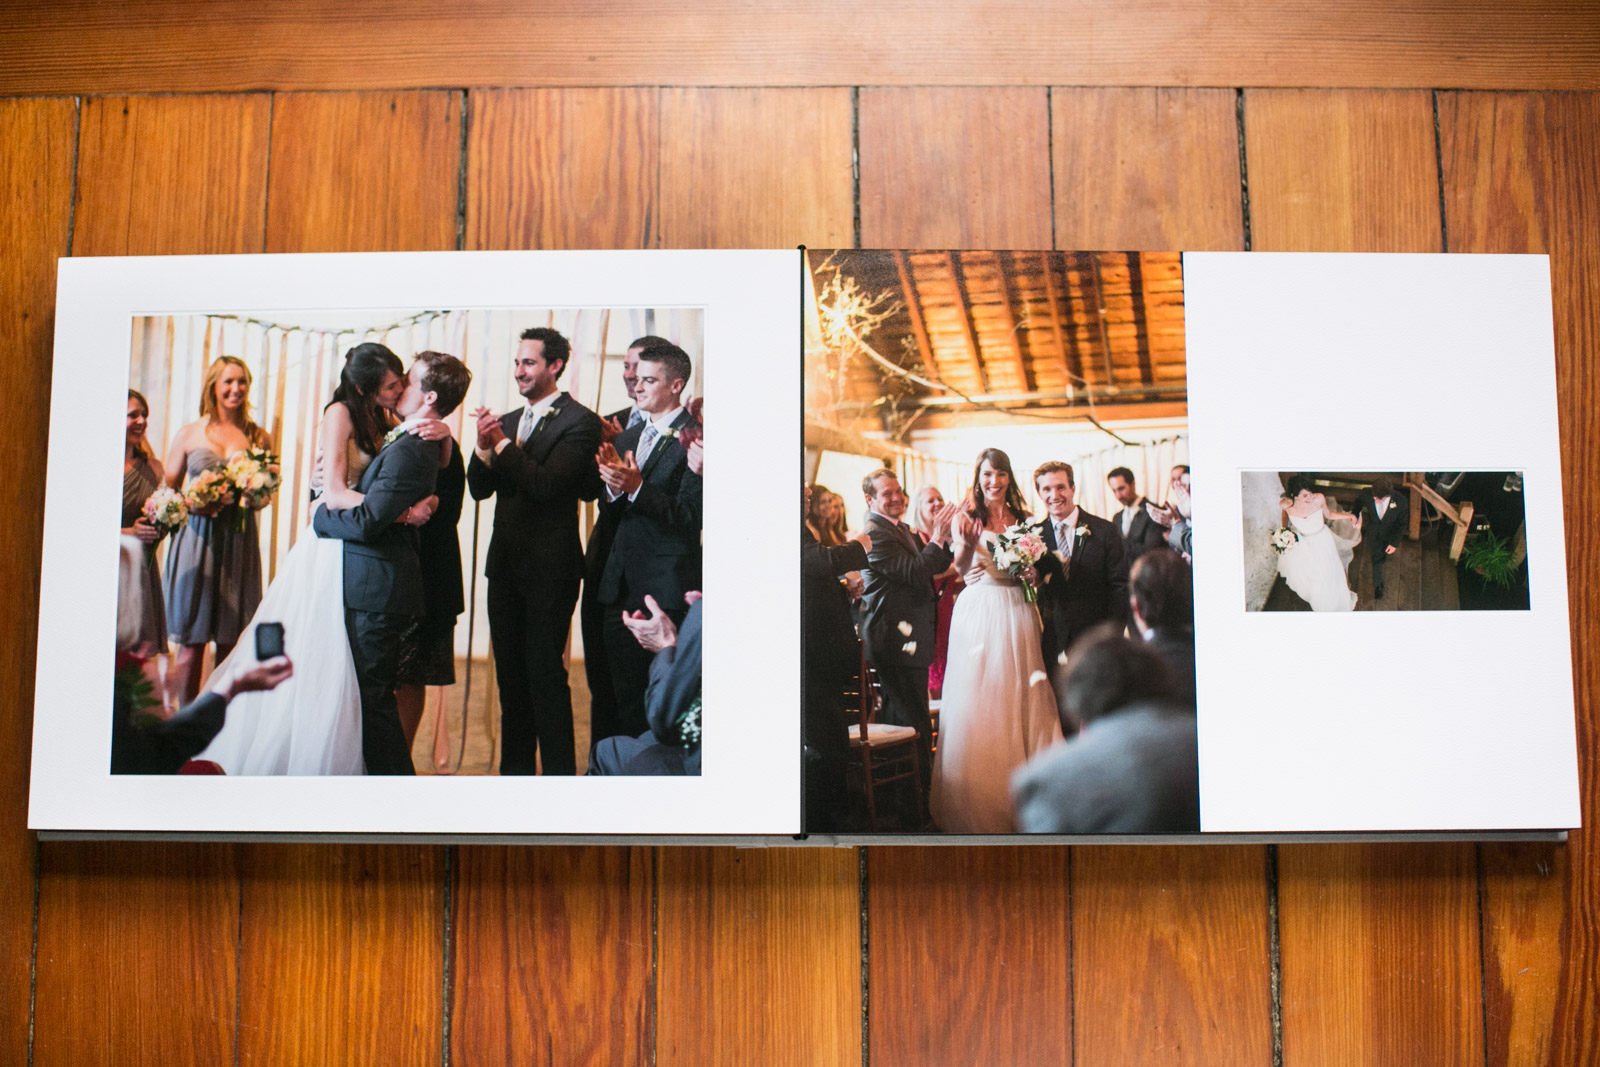 Zev Fisher Photography, Wedding Albums, Wedding Album Design, Matted Wedding Album, Album Details